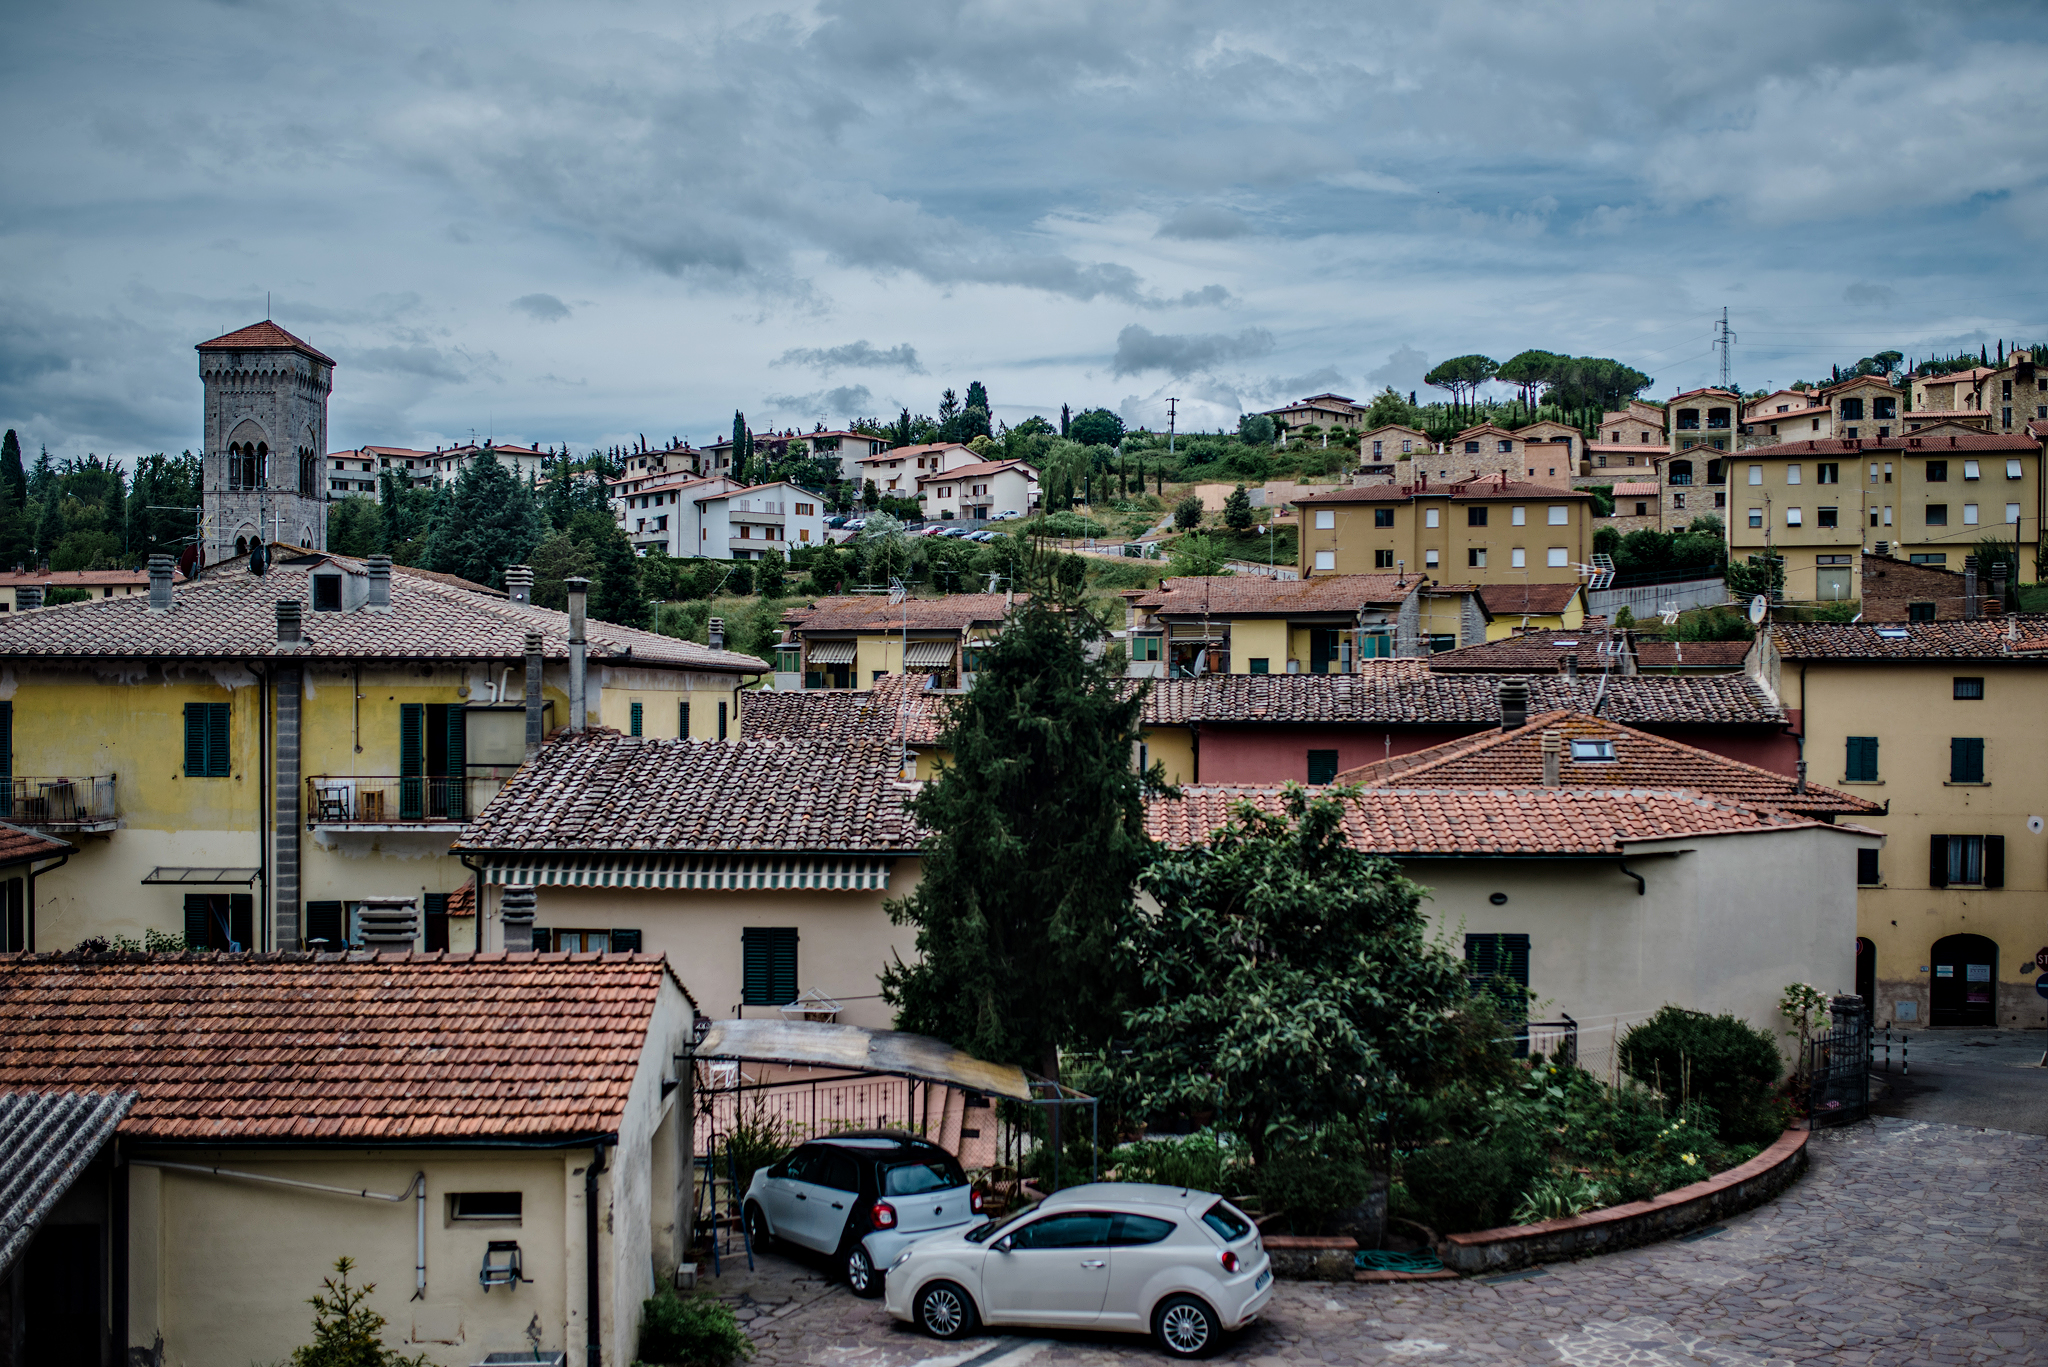 Gaiole in Chianti - Travel Photographer